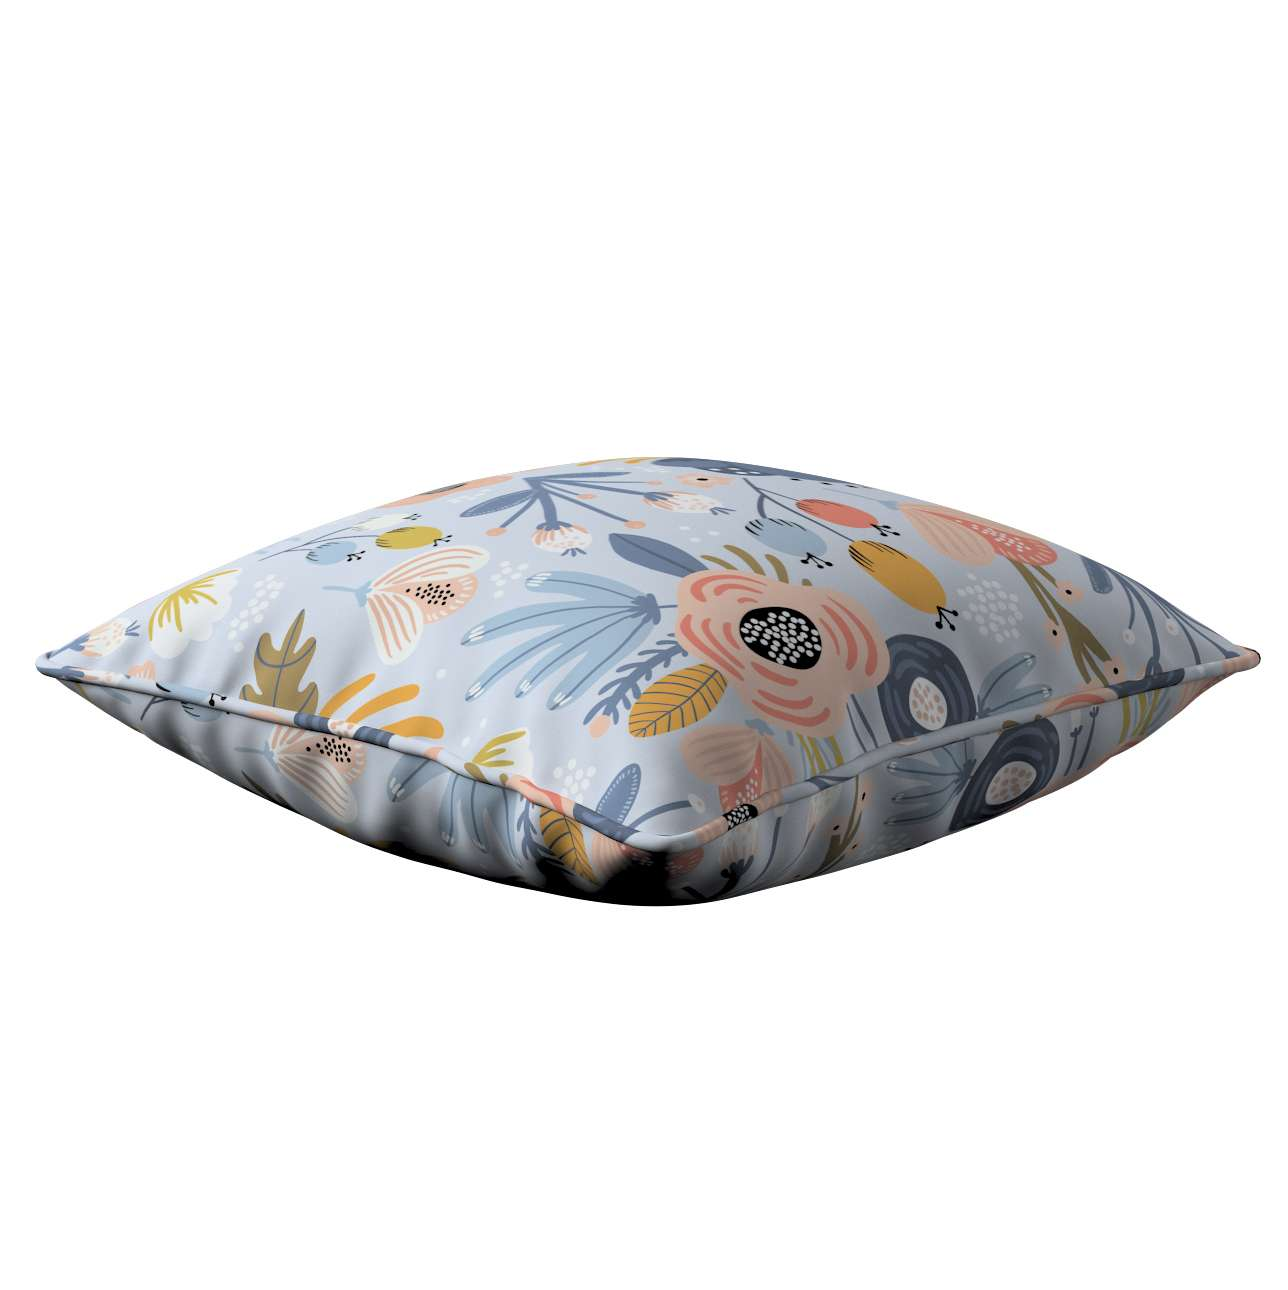 Lola piped cushion cover in collection Magic Collection, fabric: 500-05